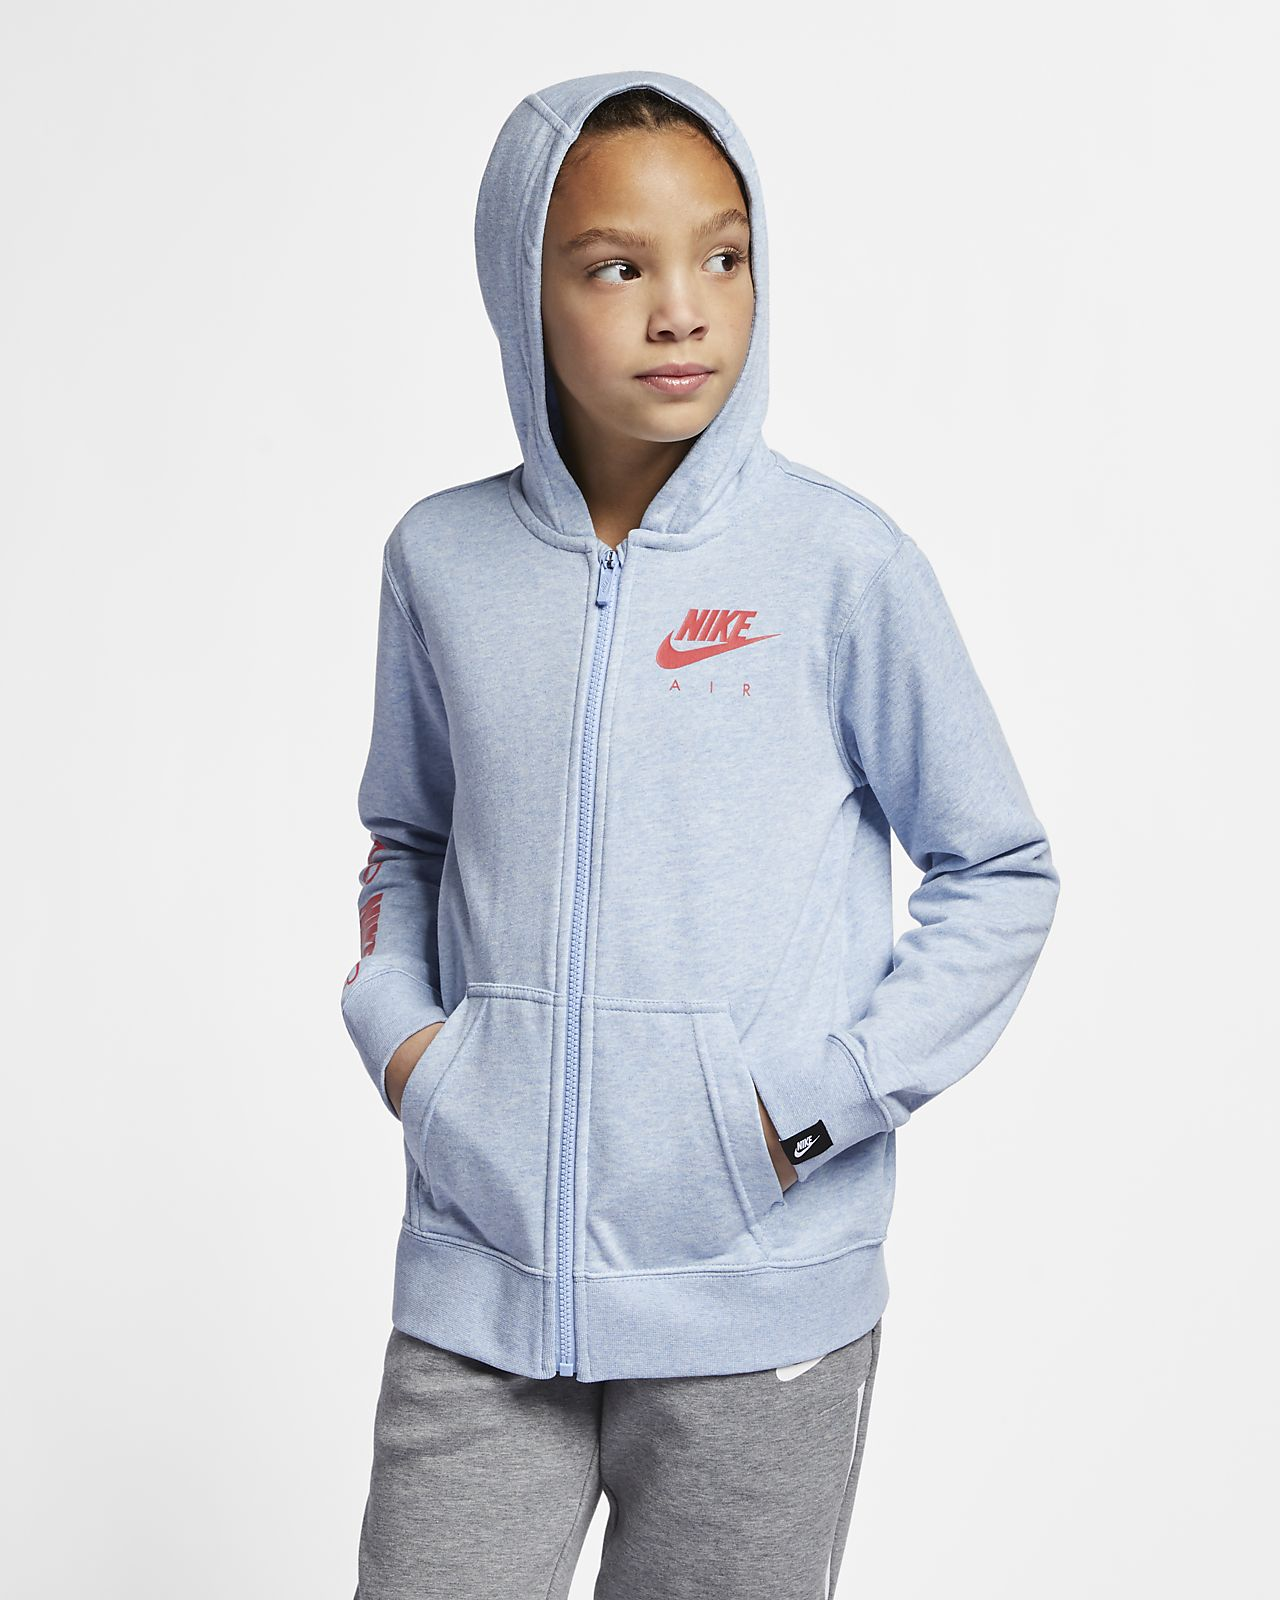 c74975330a Nike Air Big Kids' (Girls') Full-Zip Hoodie. Nike.com